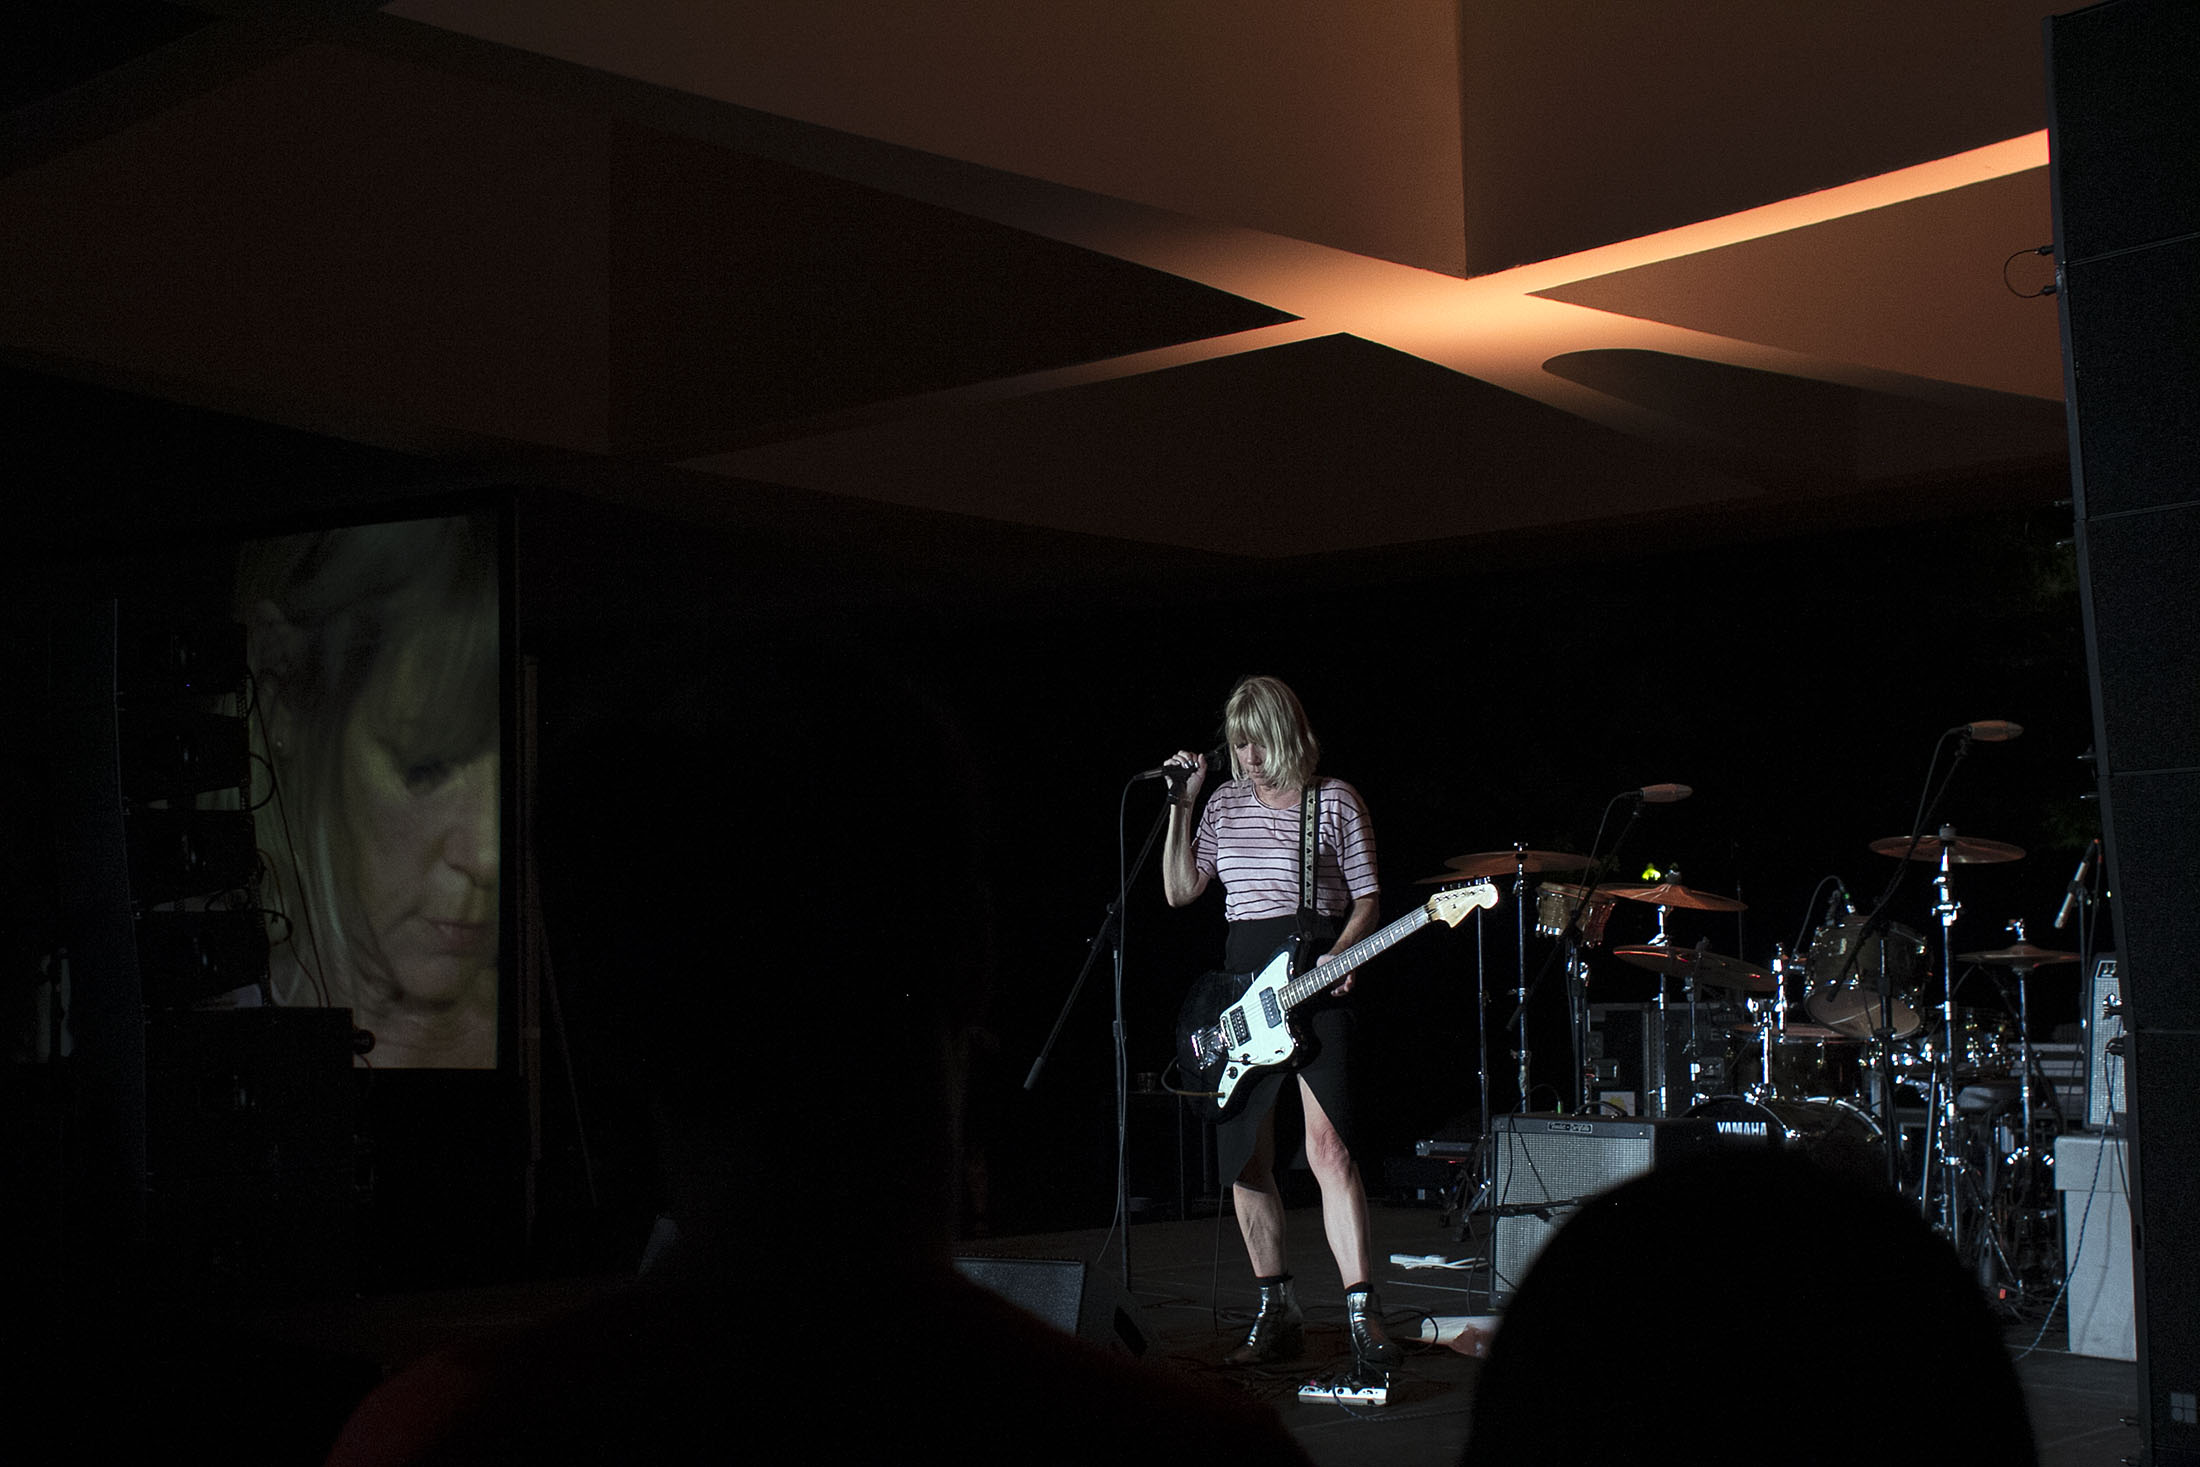 Musician Kim Gordon performs at a one-night tribute concert in honor of Yoko Ono at the Hirshhorn Museum in Washington, D.C. this past weekend. Photo by Joshua Barajas/PBS NewsHour